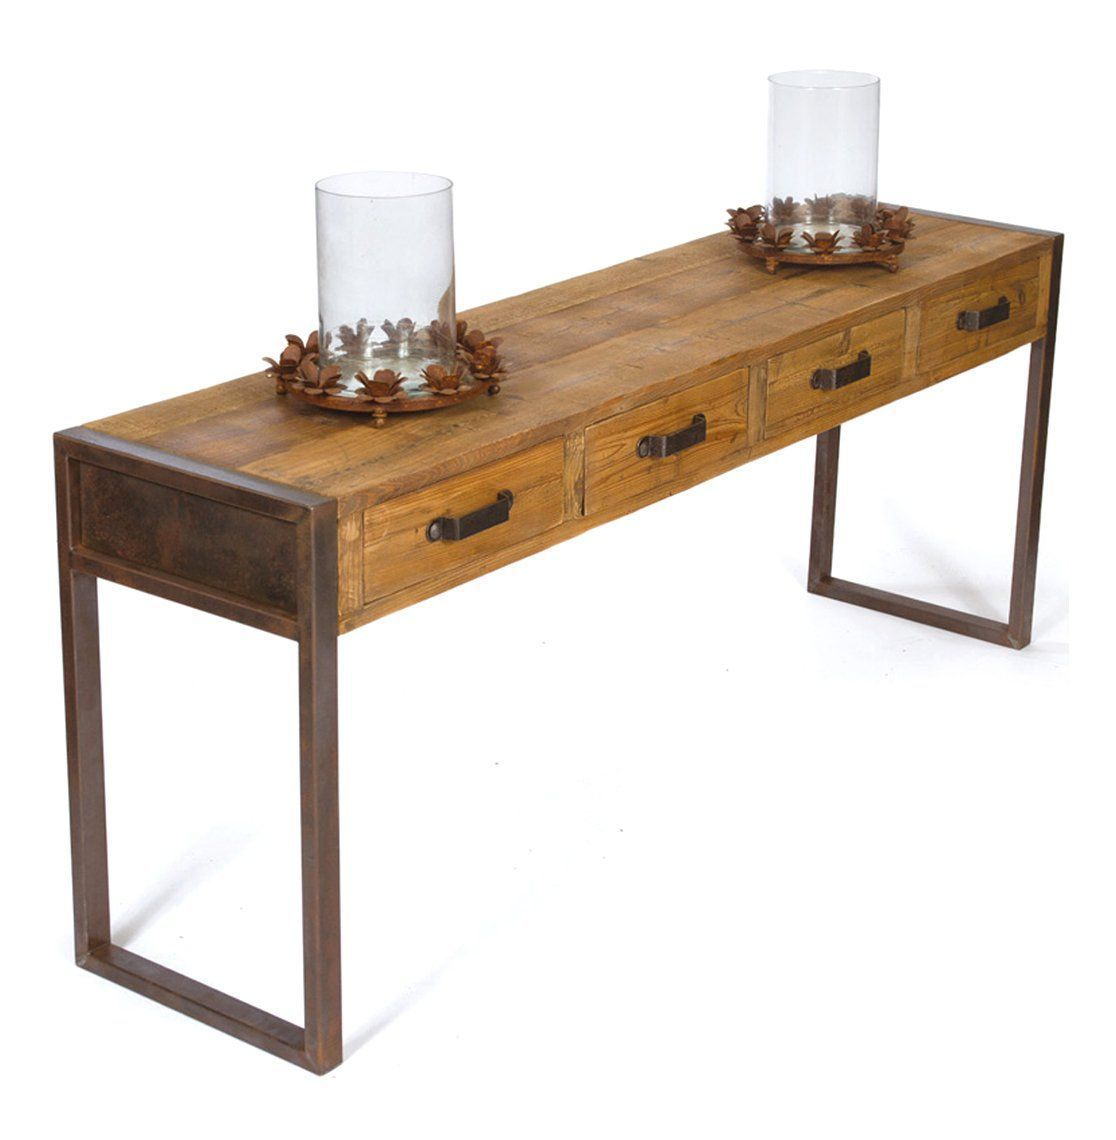 Furniture long console table with metal base and table top made from reclaimed wood with 4 drawers plus candle holders for narrow hallway spaces ideas